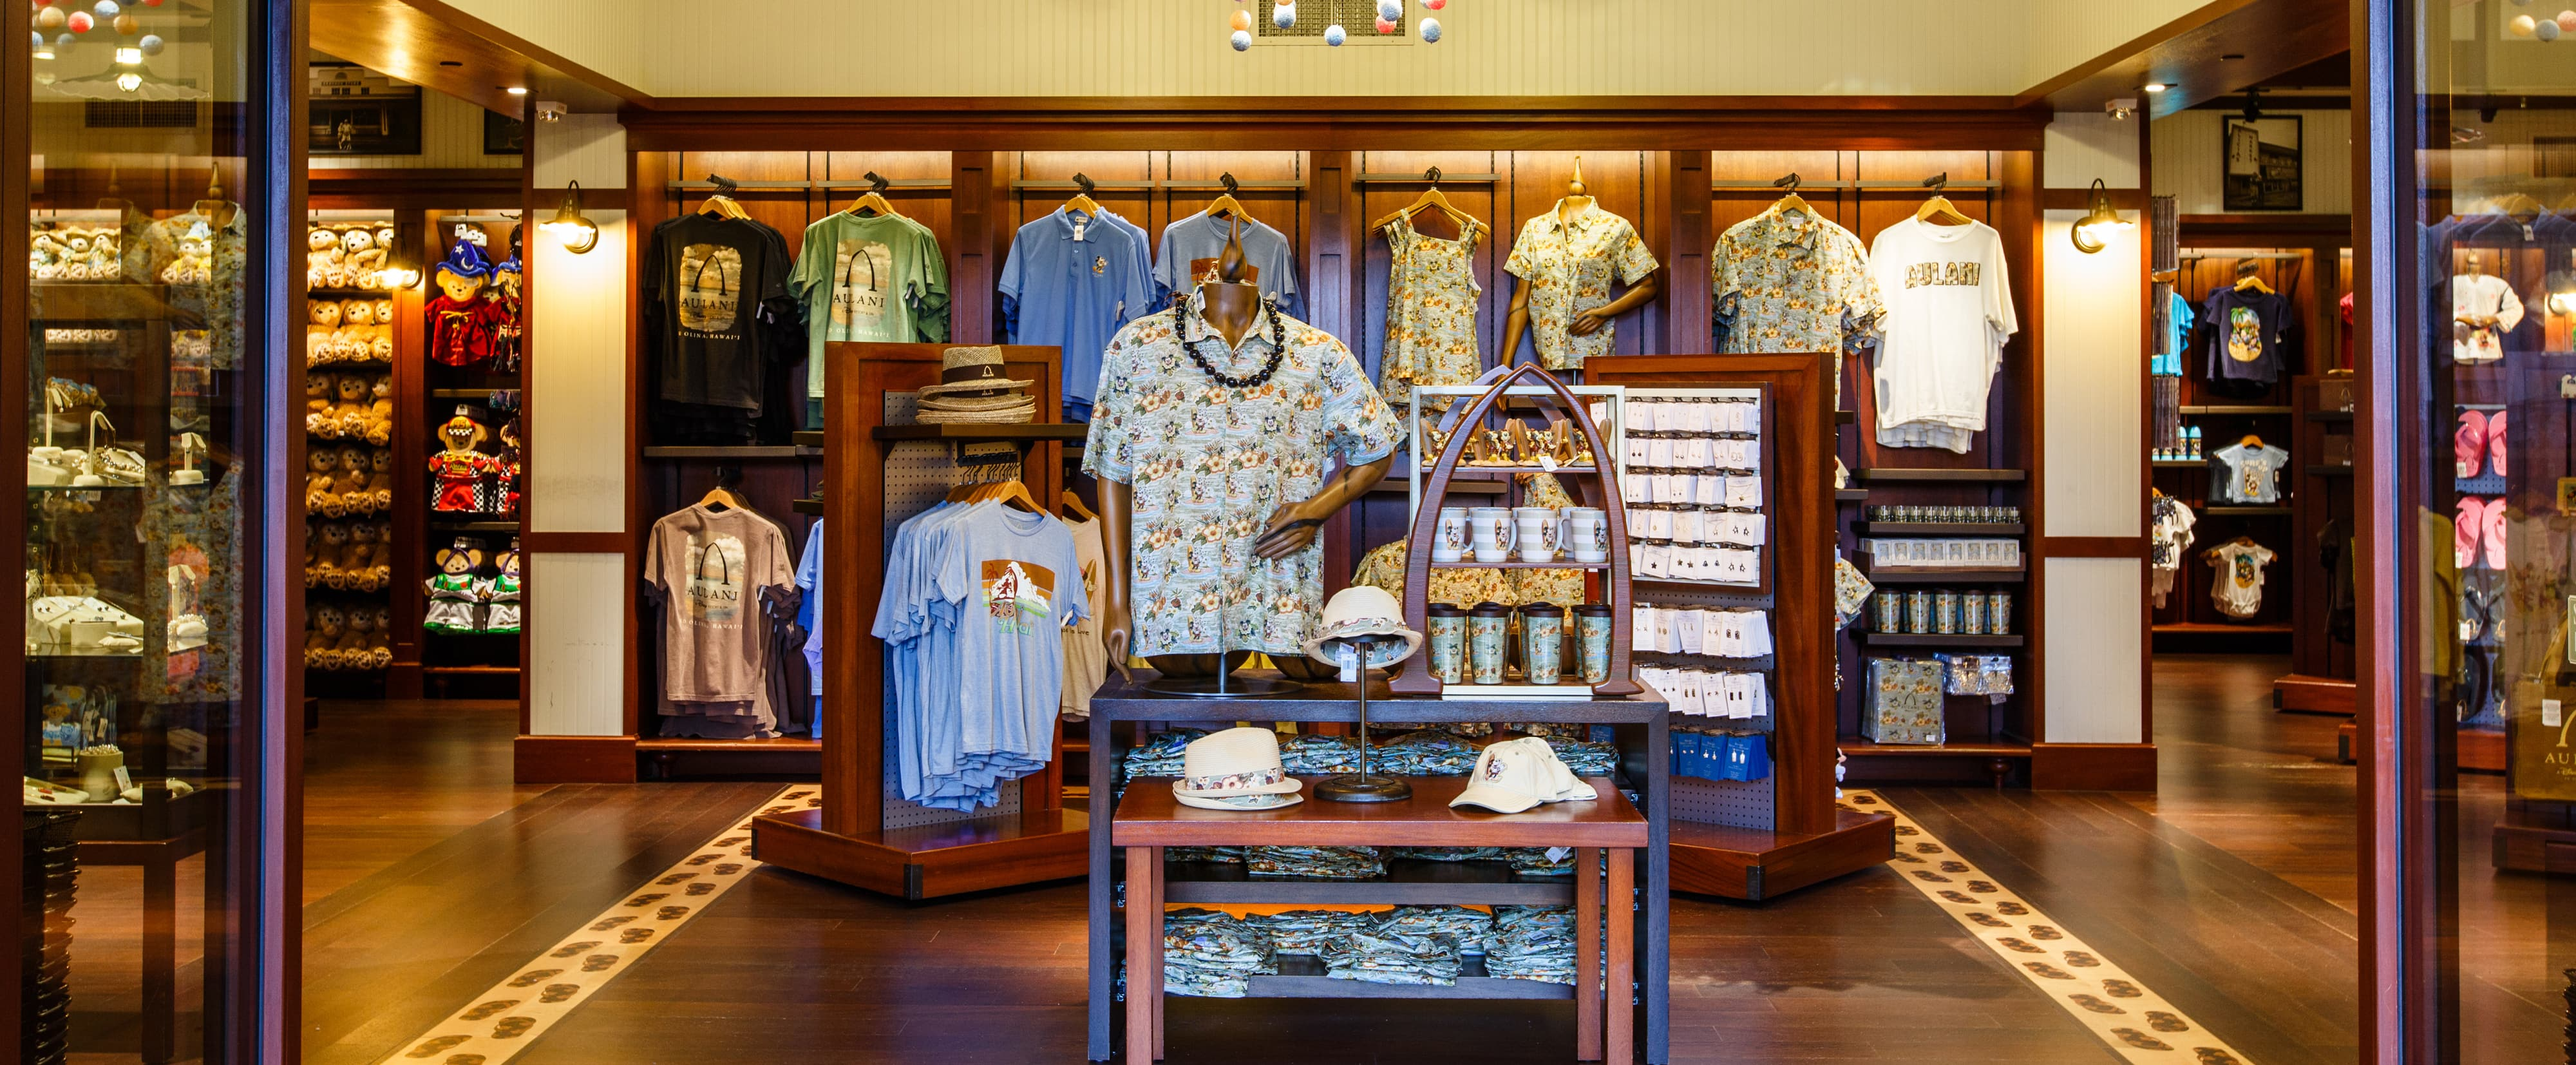 Cash Pool Pro Kalepa 39s Store Souvenirs Aulani Hawaii Resort And Spa